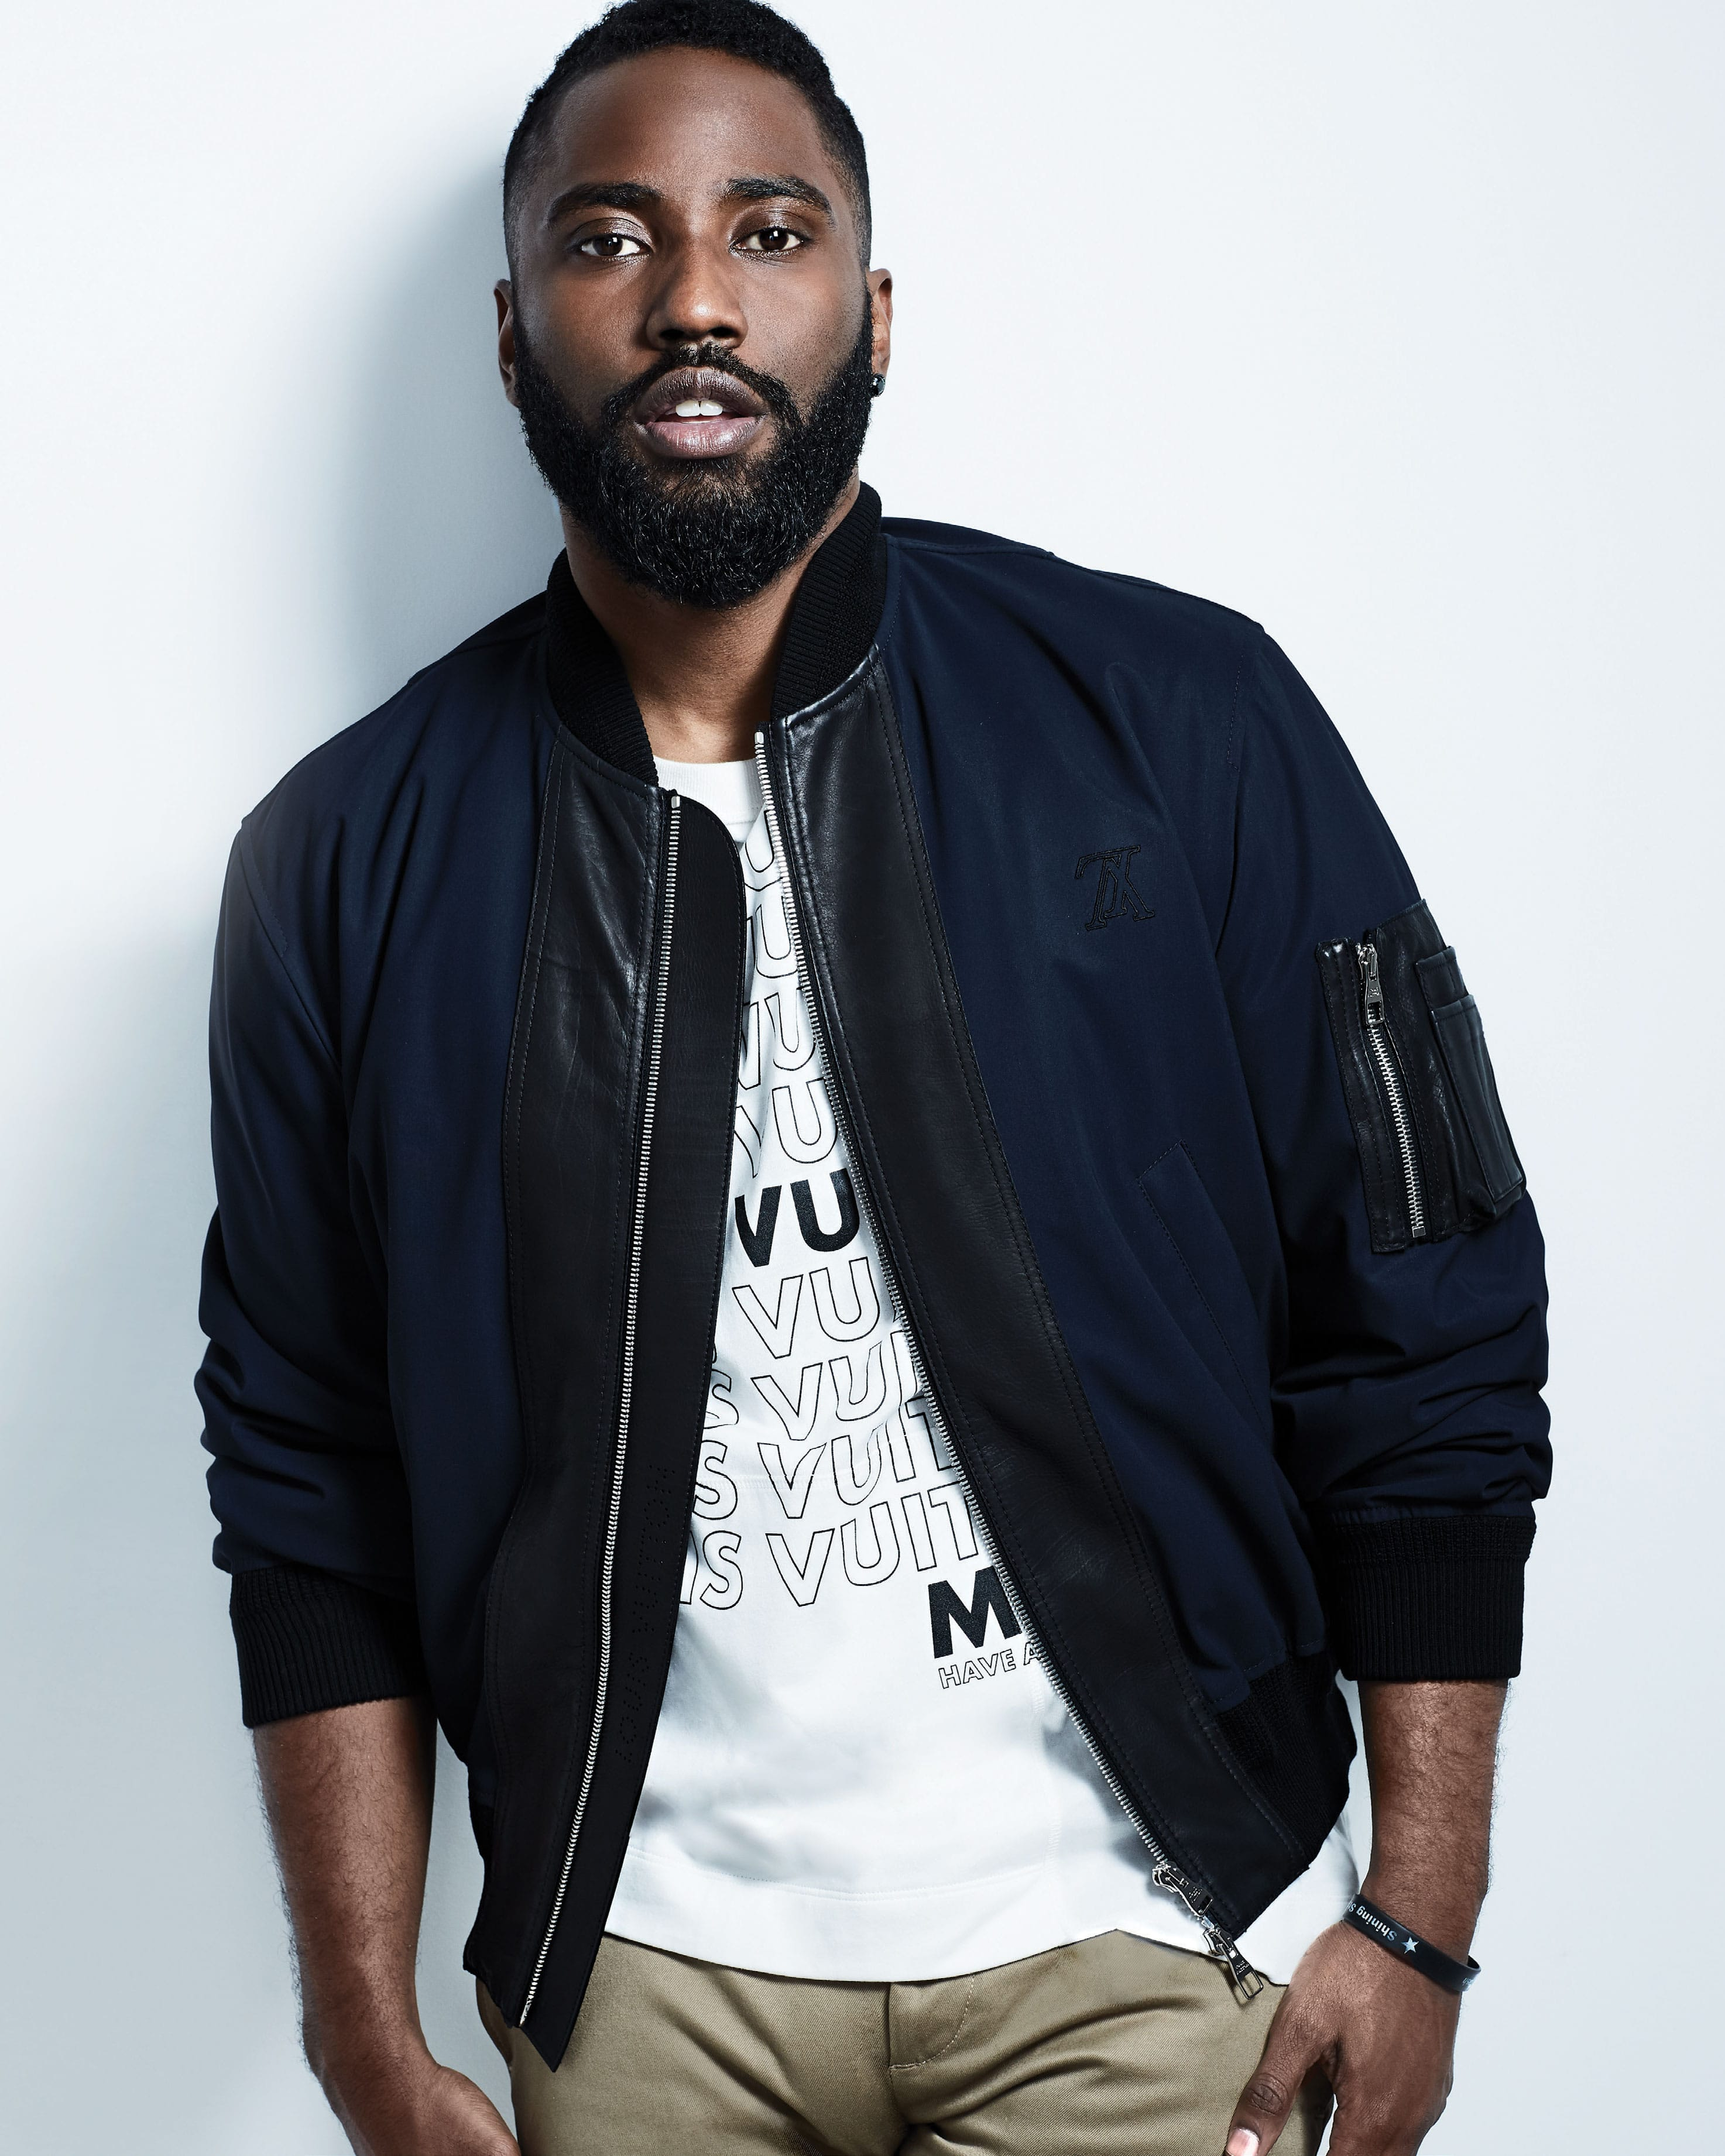 john-david-washington-2.jpg